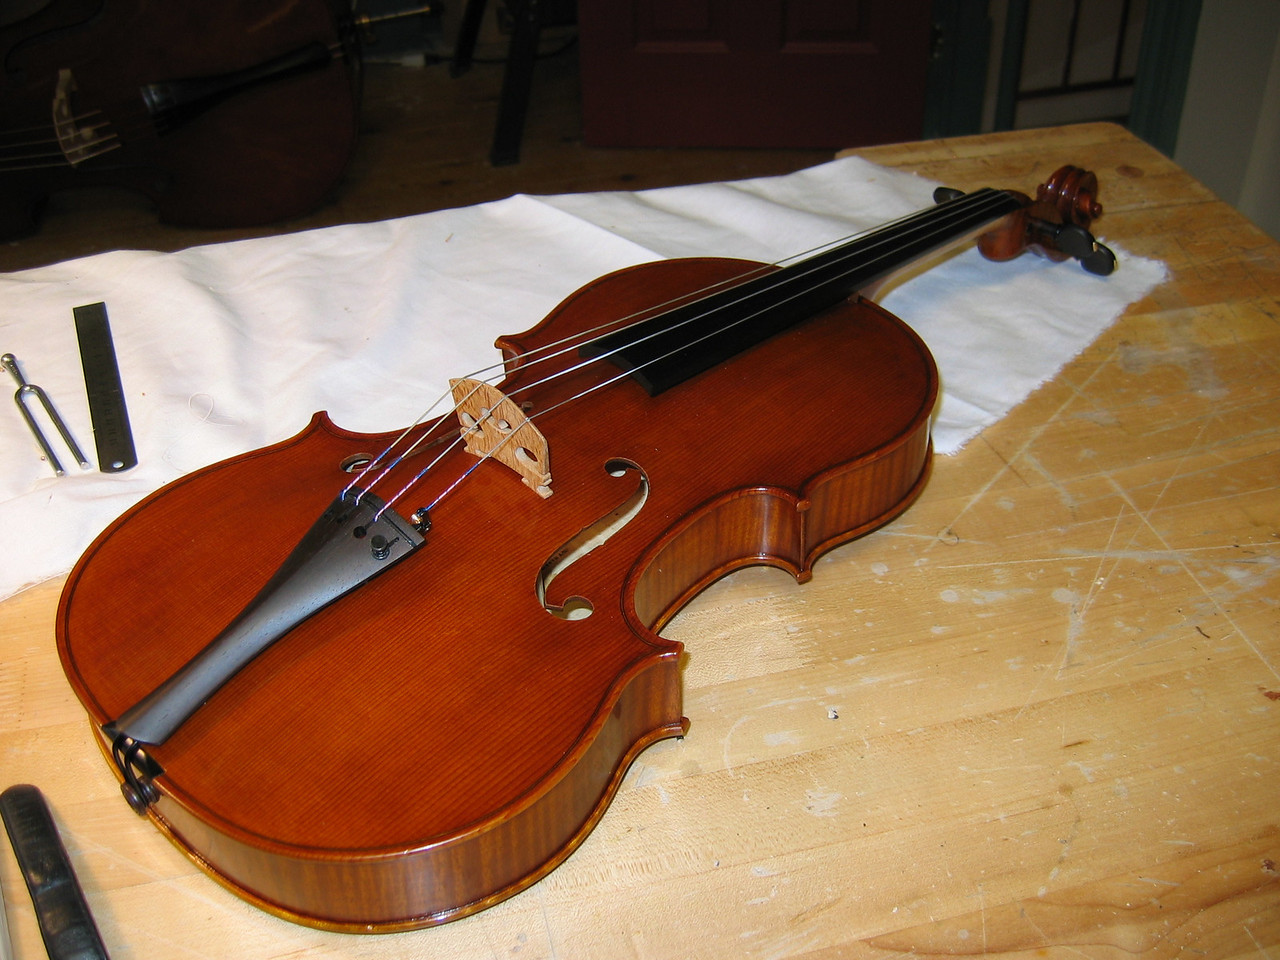 October 7 - the viola had been strung shortly before my arrival, making me the first to play it. Pegs and tailpiece are of dark rosewood.